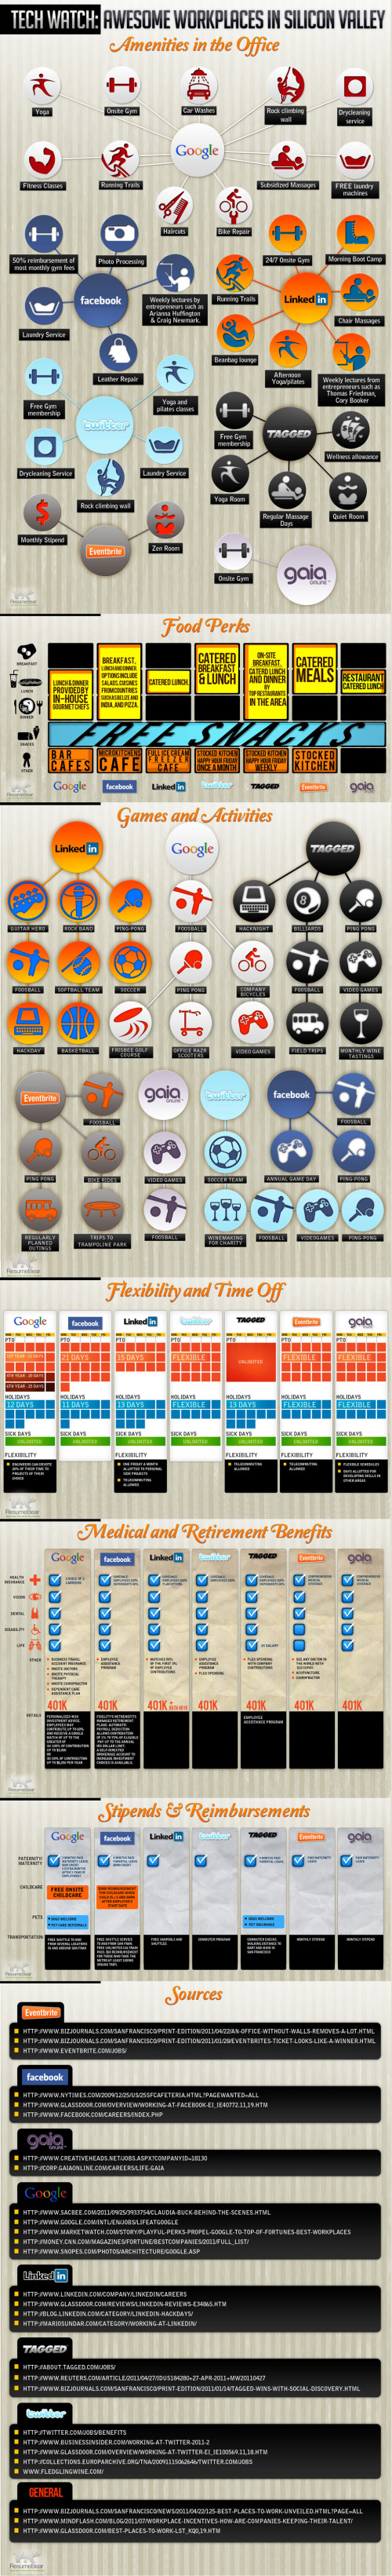 The Perks of Working at Google, Facebook, Twitter and More infographic